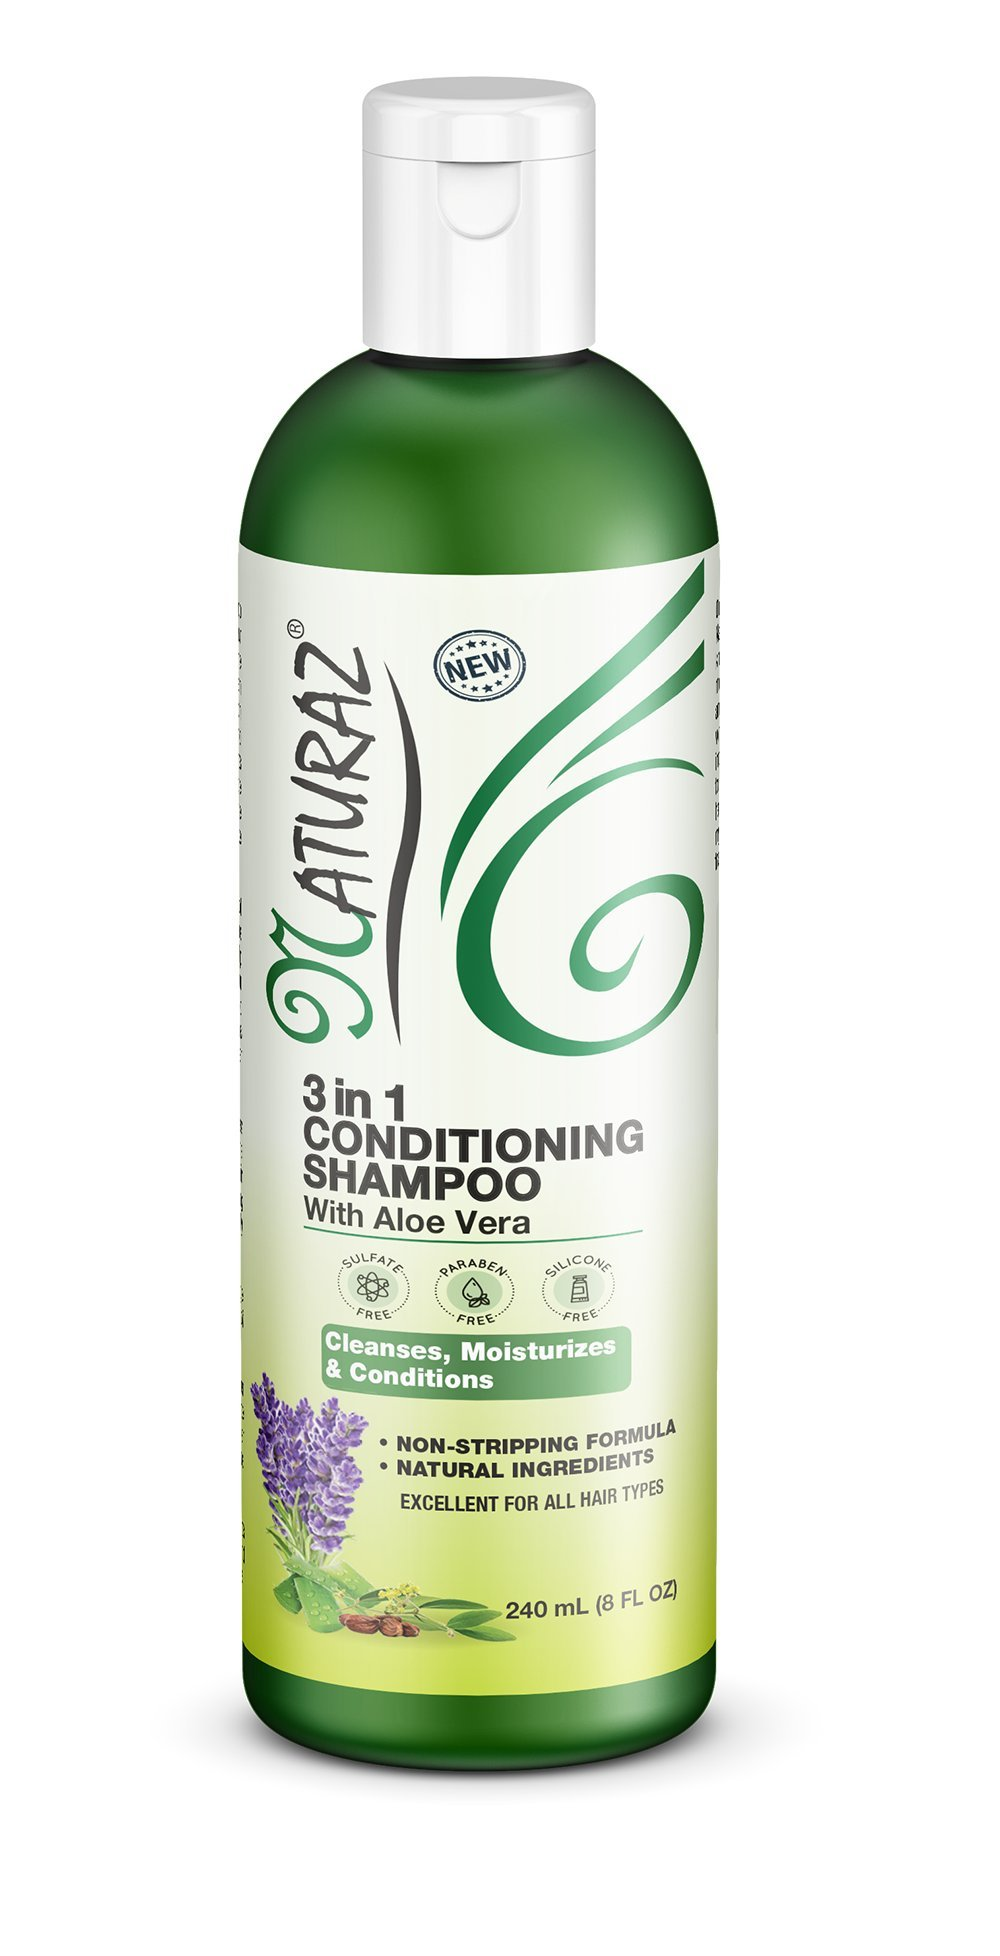 Naturaz 3 IN 1 Conditioning Shampoo